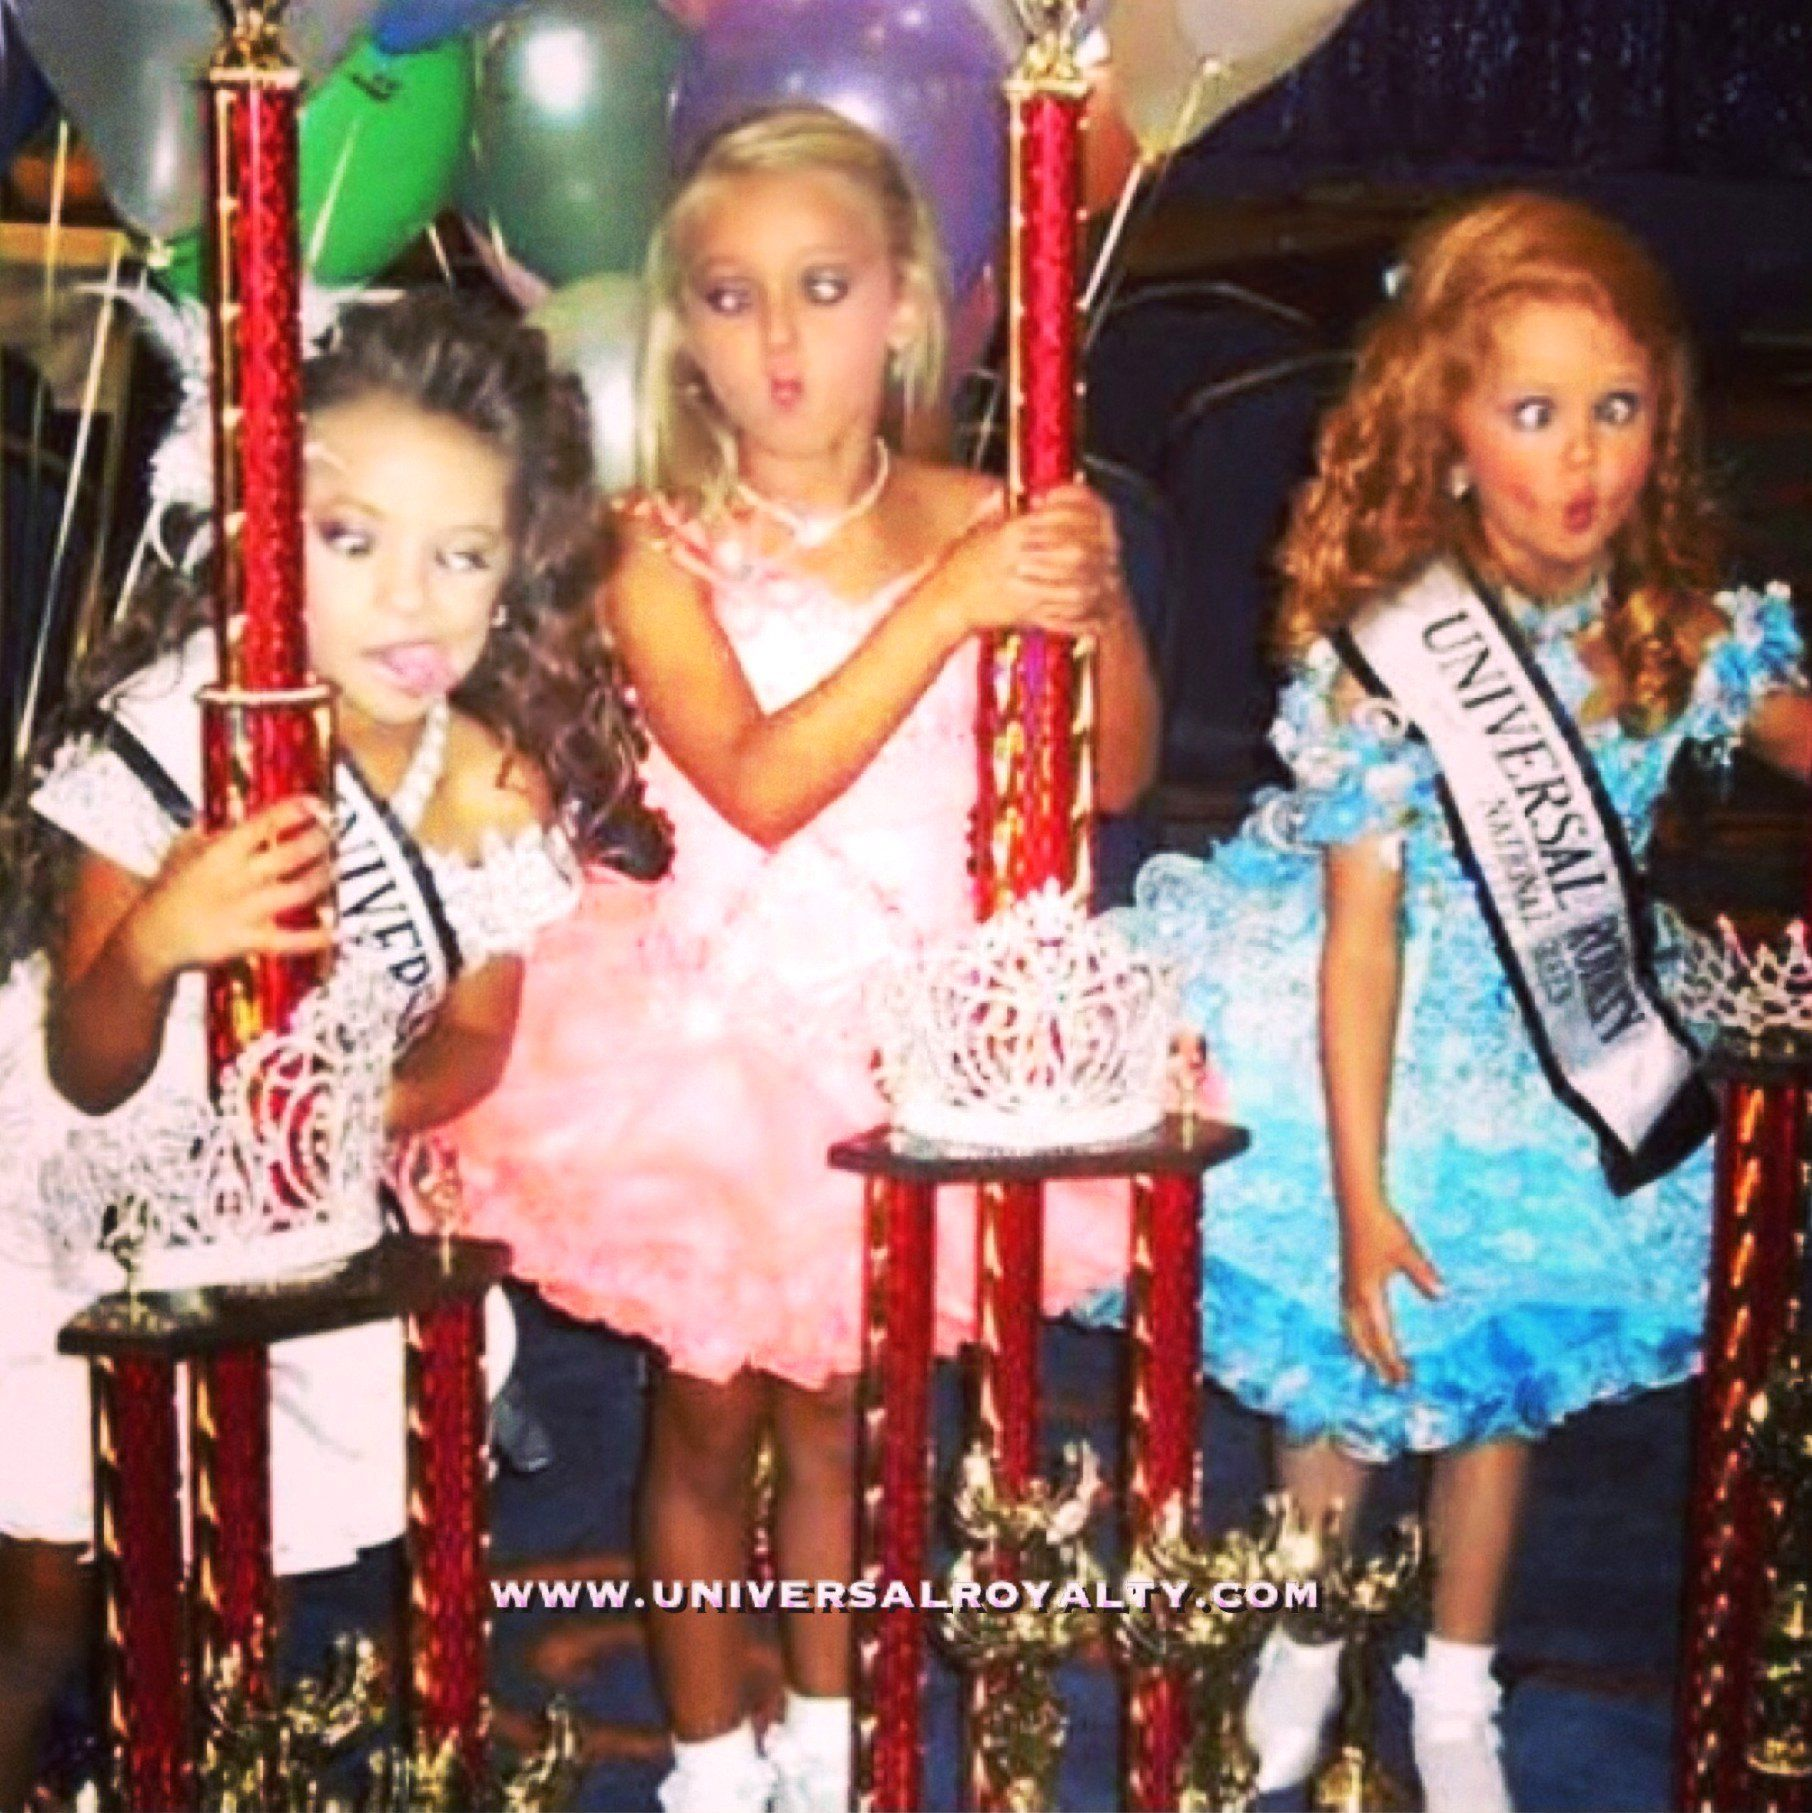 let us crown you miss universal royalty® and win 10 000 cash on pageant girls are always having fun at universal royalty® beauty pageant universalroyalty com